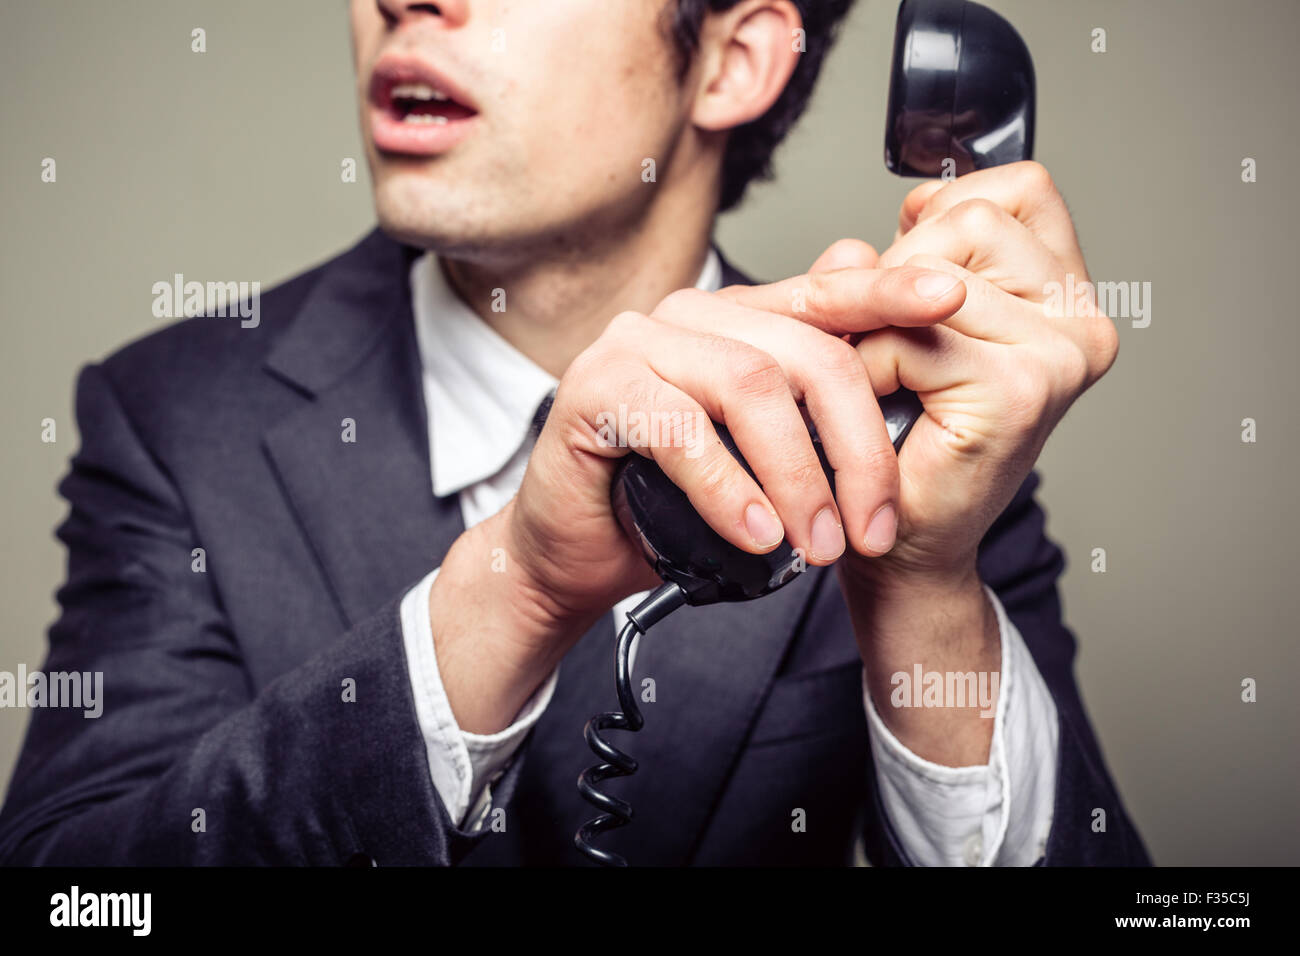 Businessman is covering the phone to speak in private to someone in the room - Stock Image